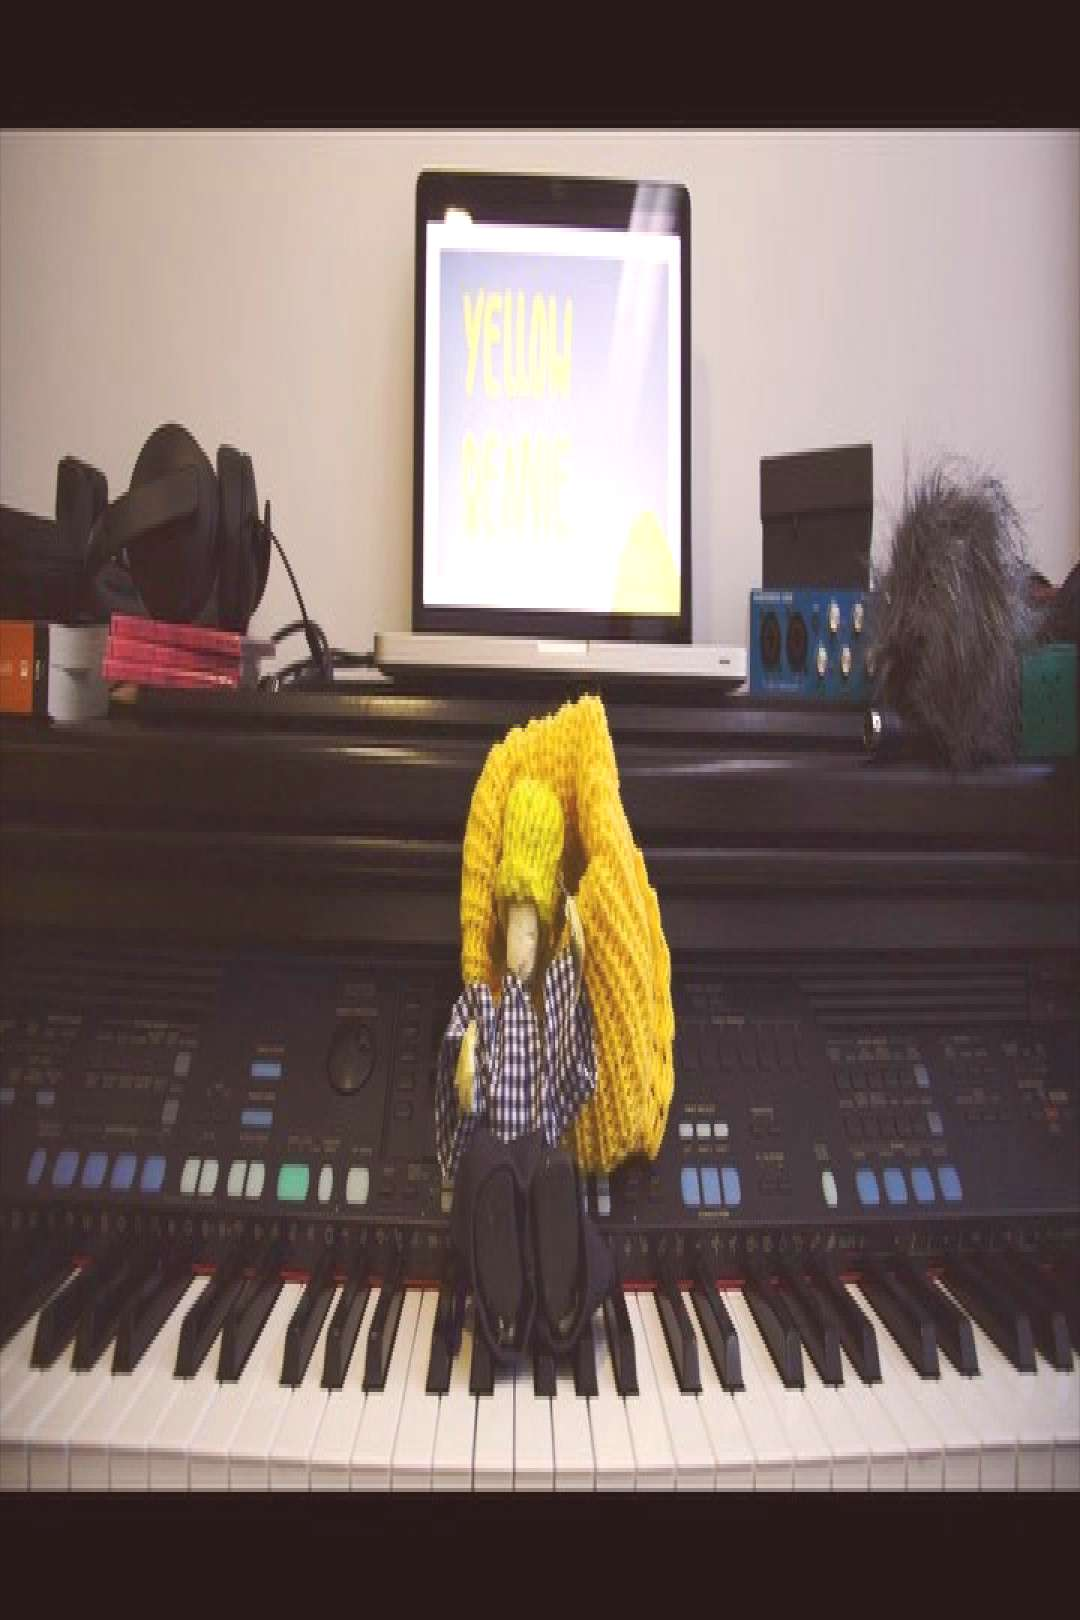 Crowdfunding for a new project starting soon ️ #yellowbeanie #m